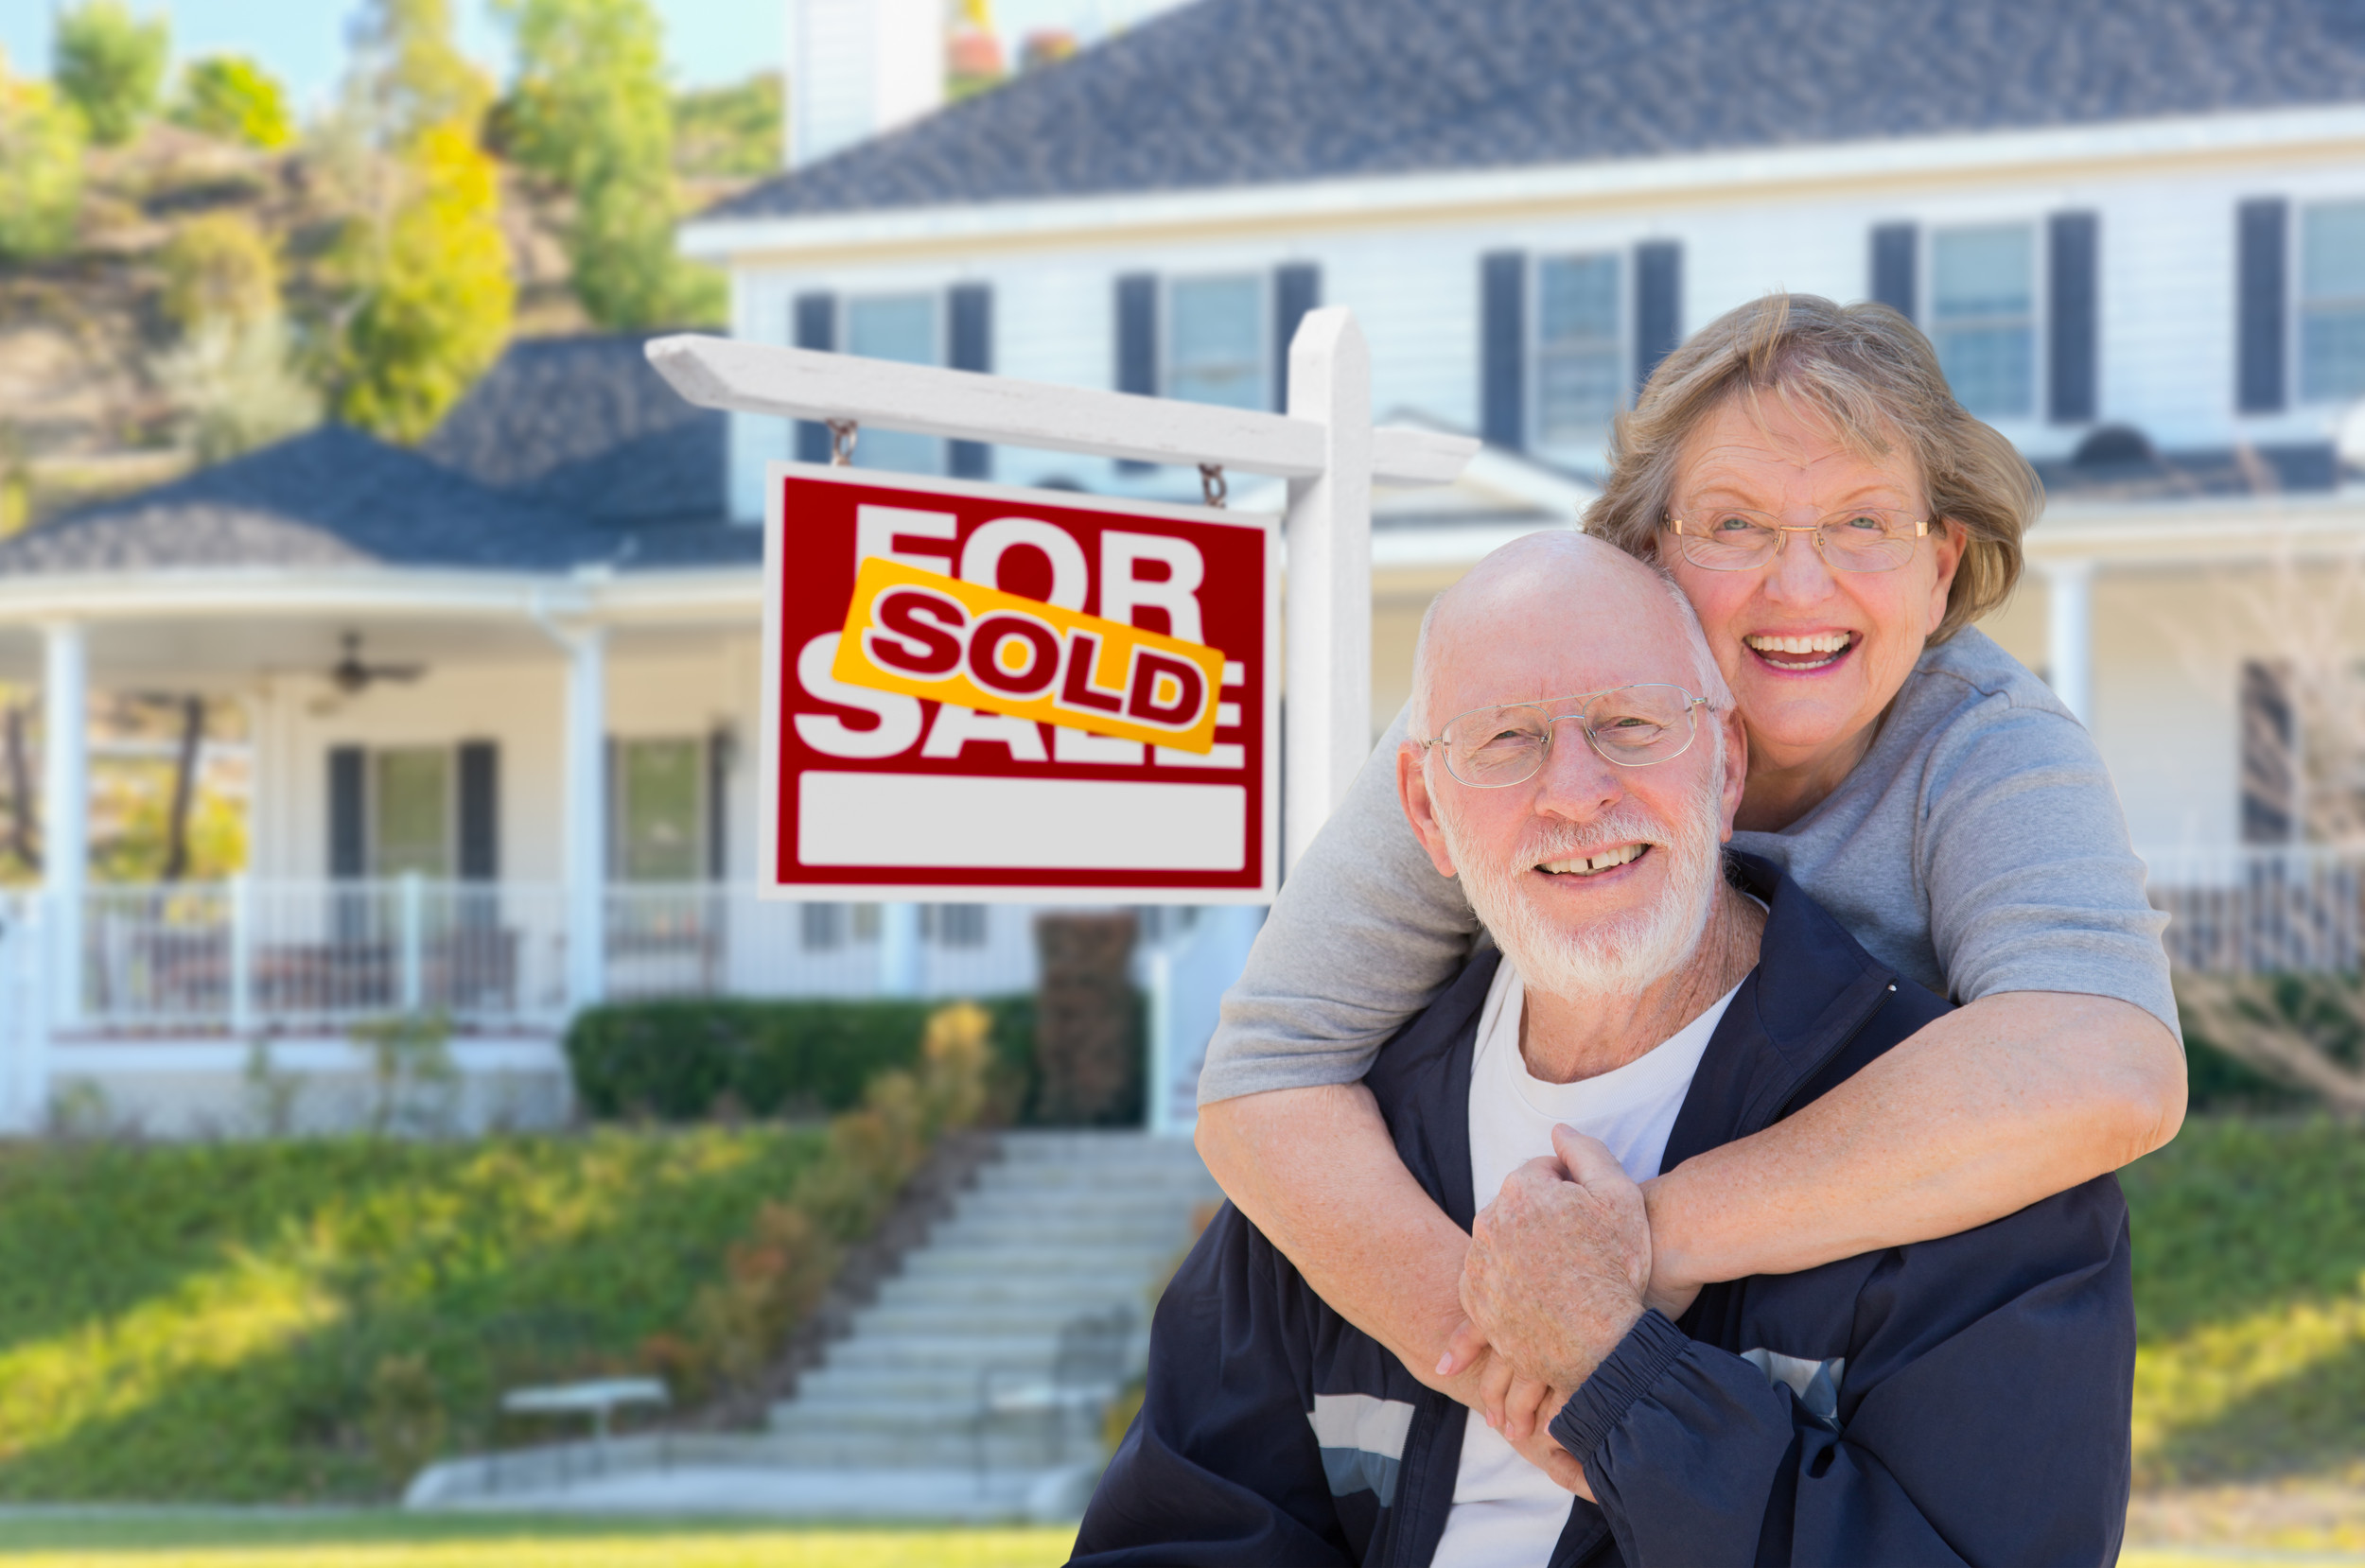 Planning to sell your home in retirement? Downsize costs along with space